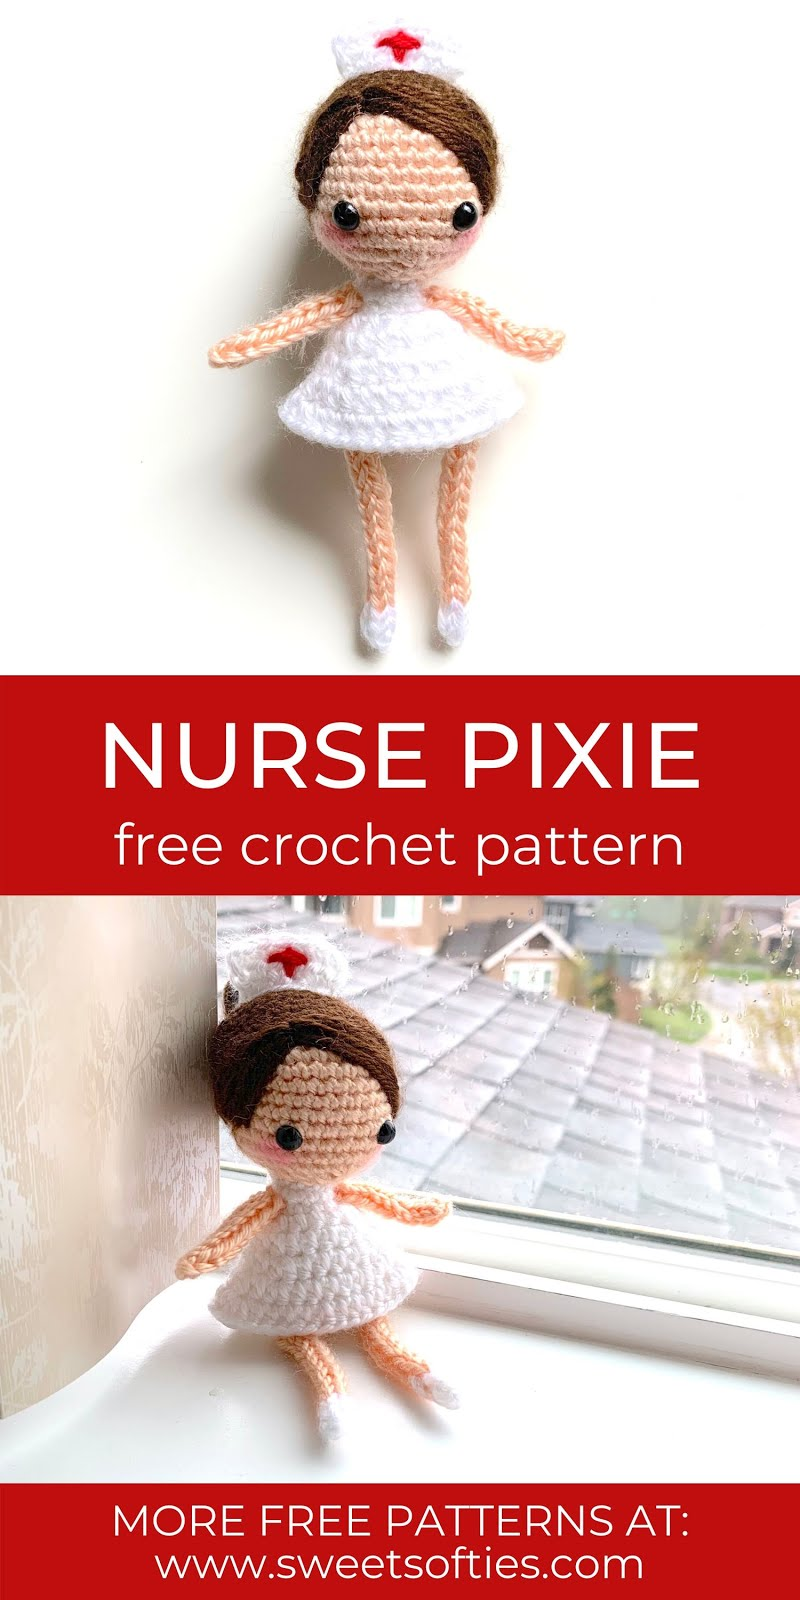 15 Crochet Frontline Hero Nurse Patterns – Crochet | 1600x800